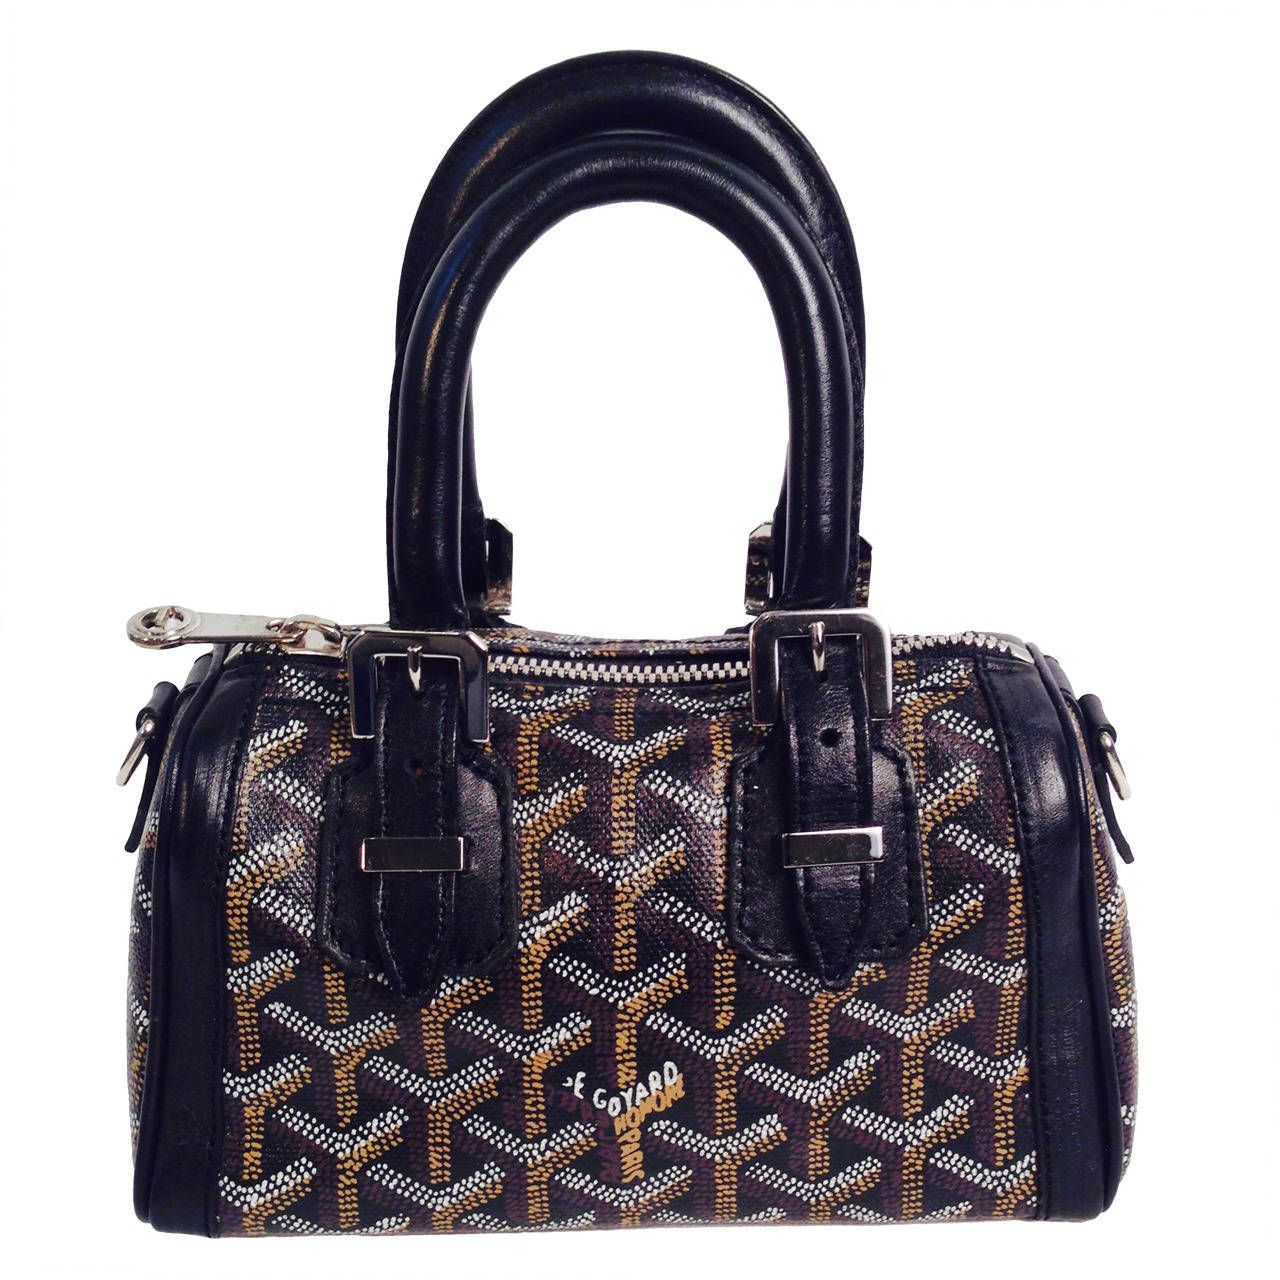 Black Goyardine Canvas Mini Crosiere Duffle Bag   From a collection of rare  vintage handbags and purses at ... 1467ba772d